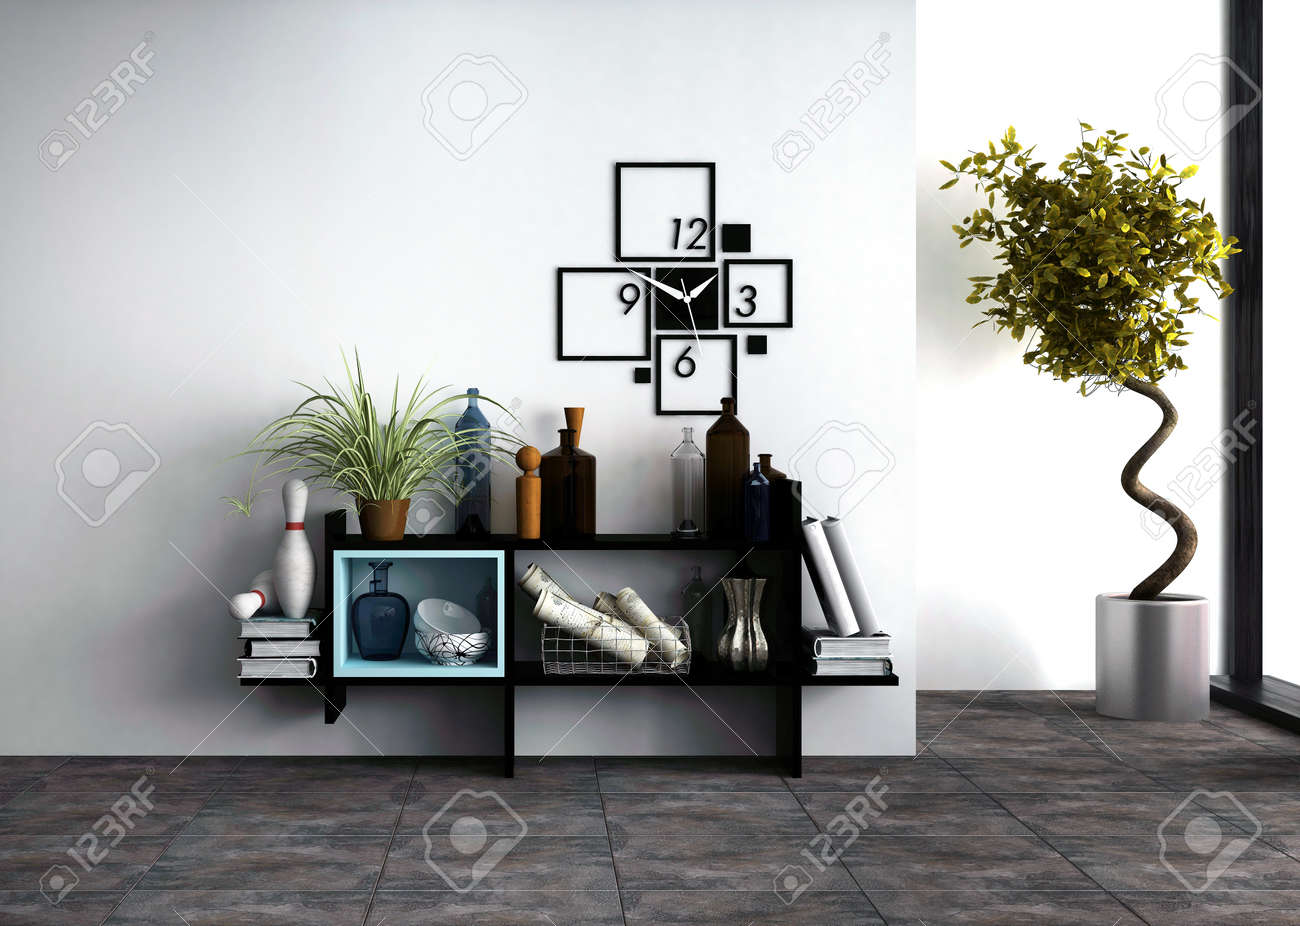 Wall Mounted Shelves With Personal Effects And A Designer Clock - wall mounted shelves design